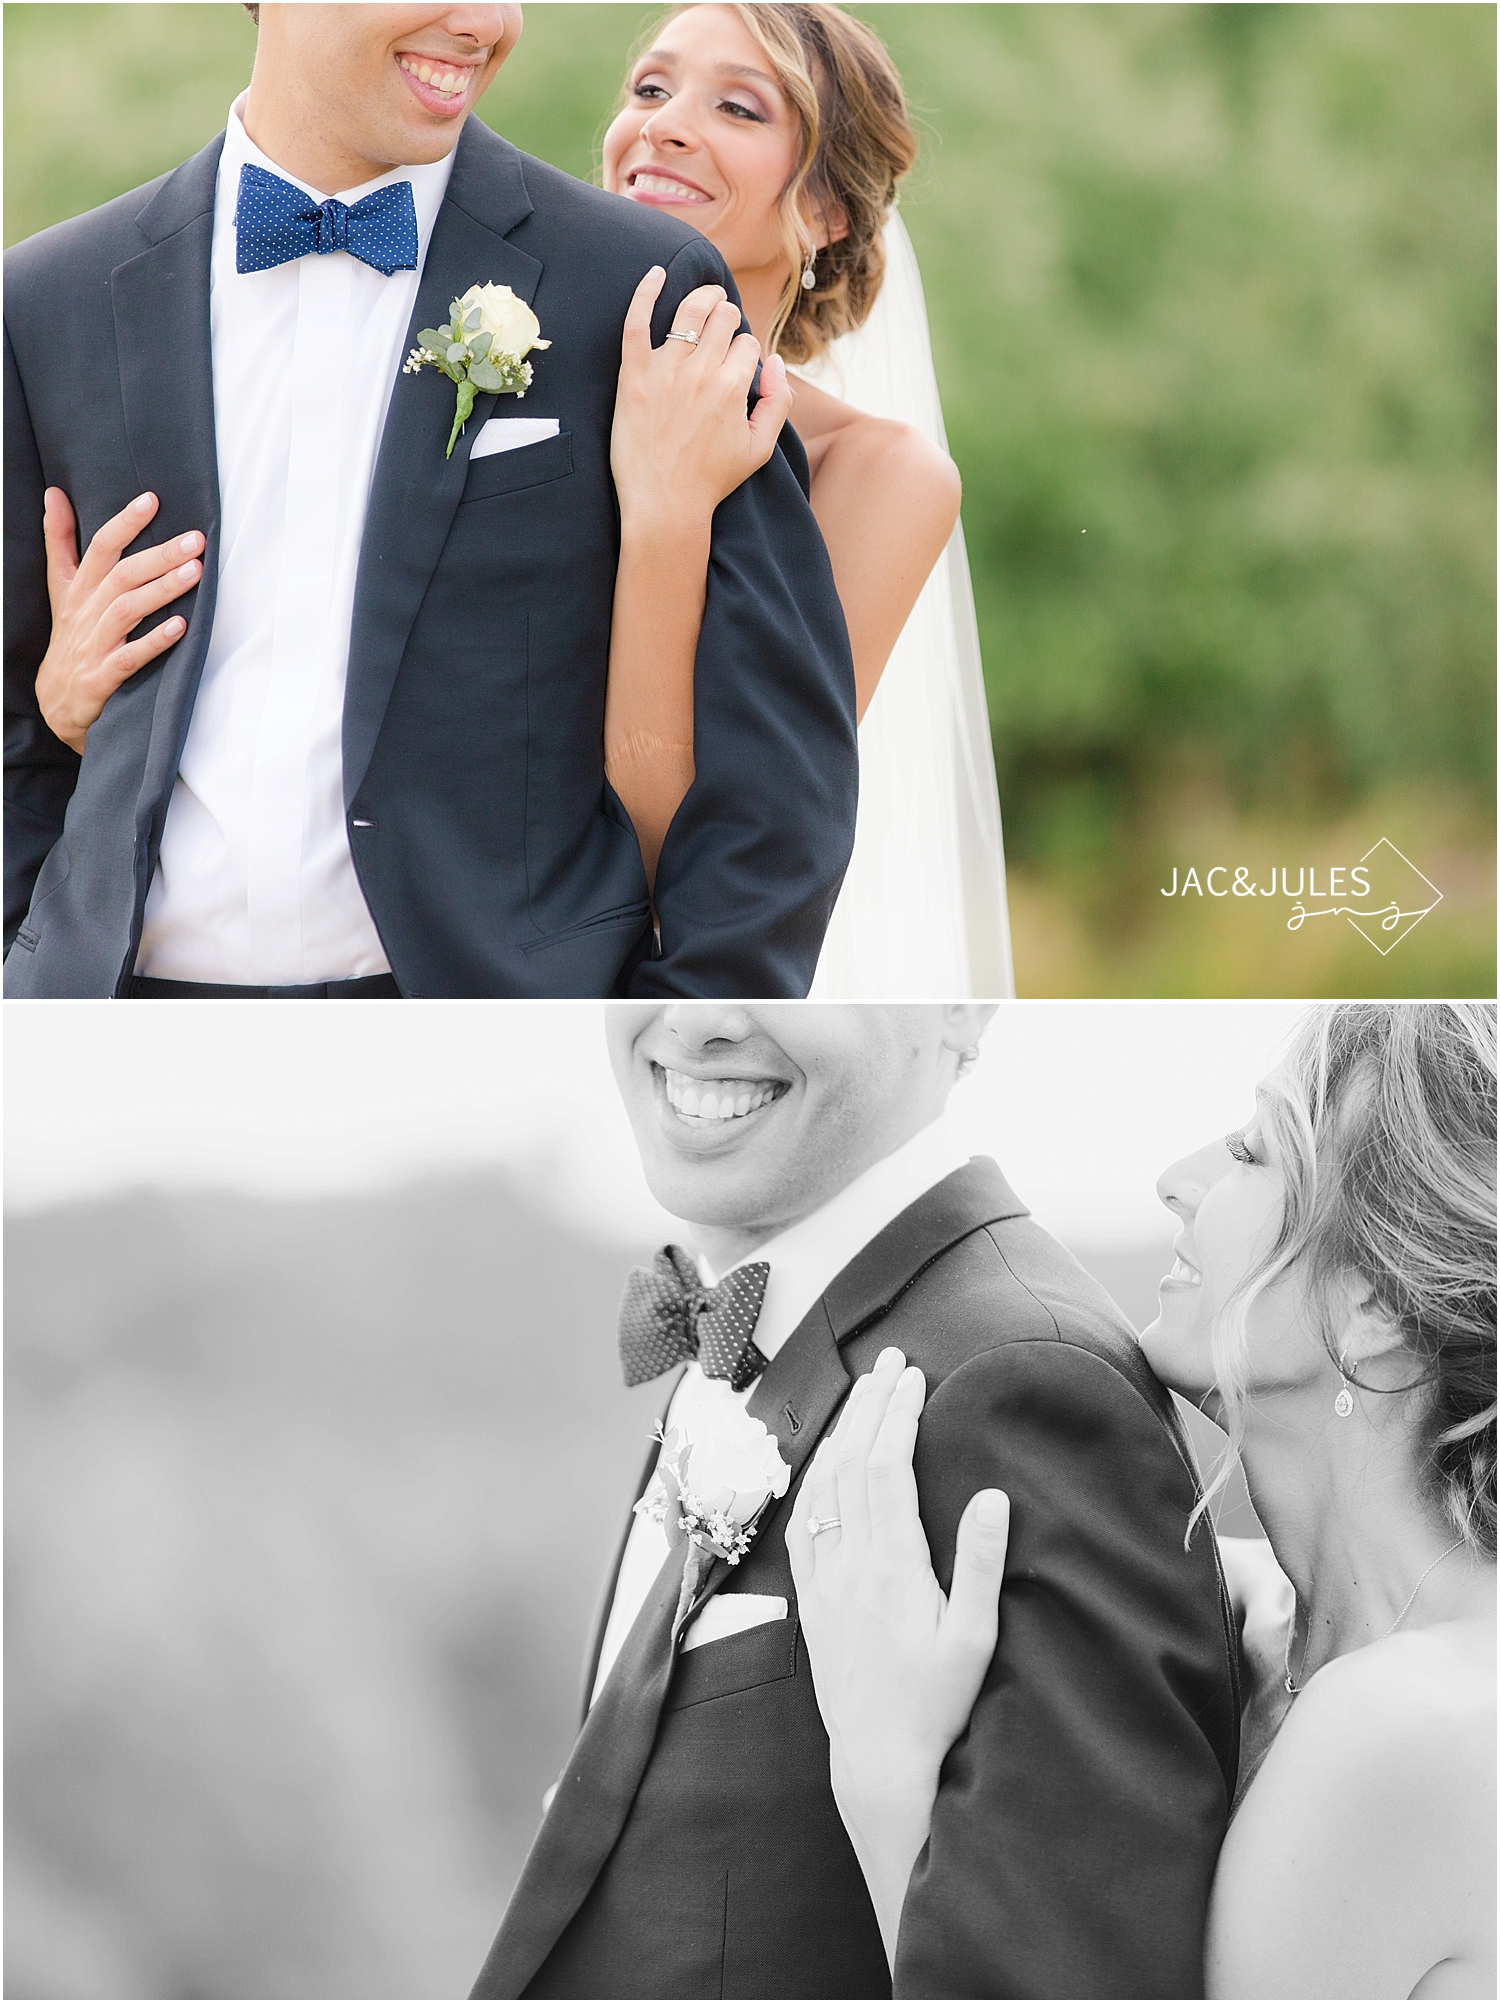 jacnjules photographs bride and groom's wedding at immaculate conception in annandale nj